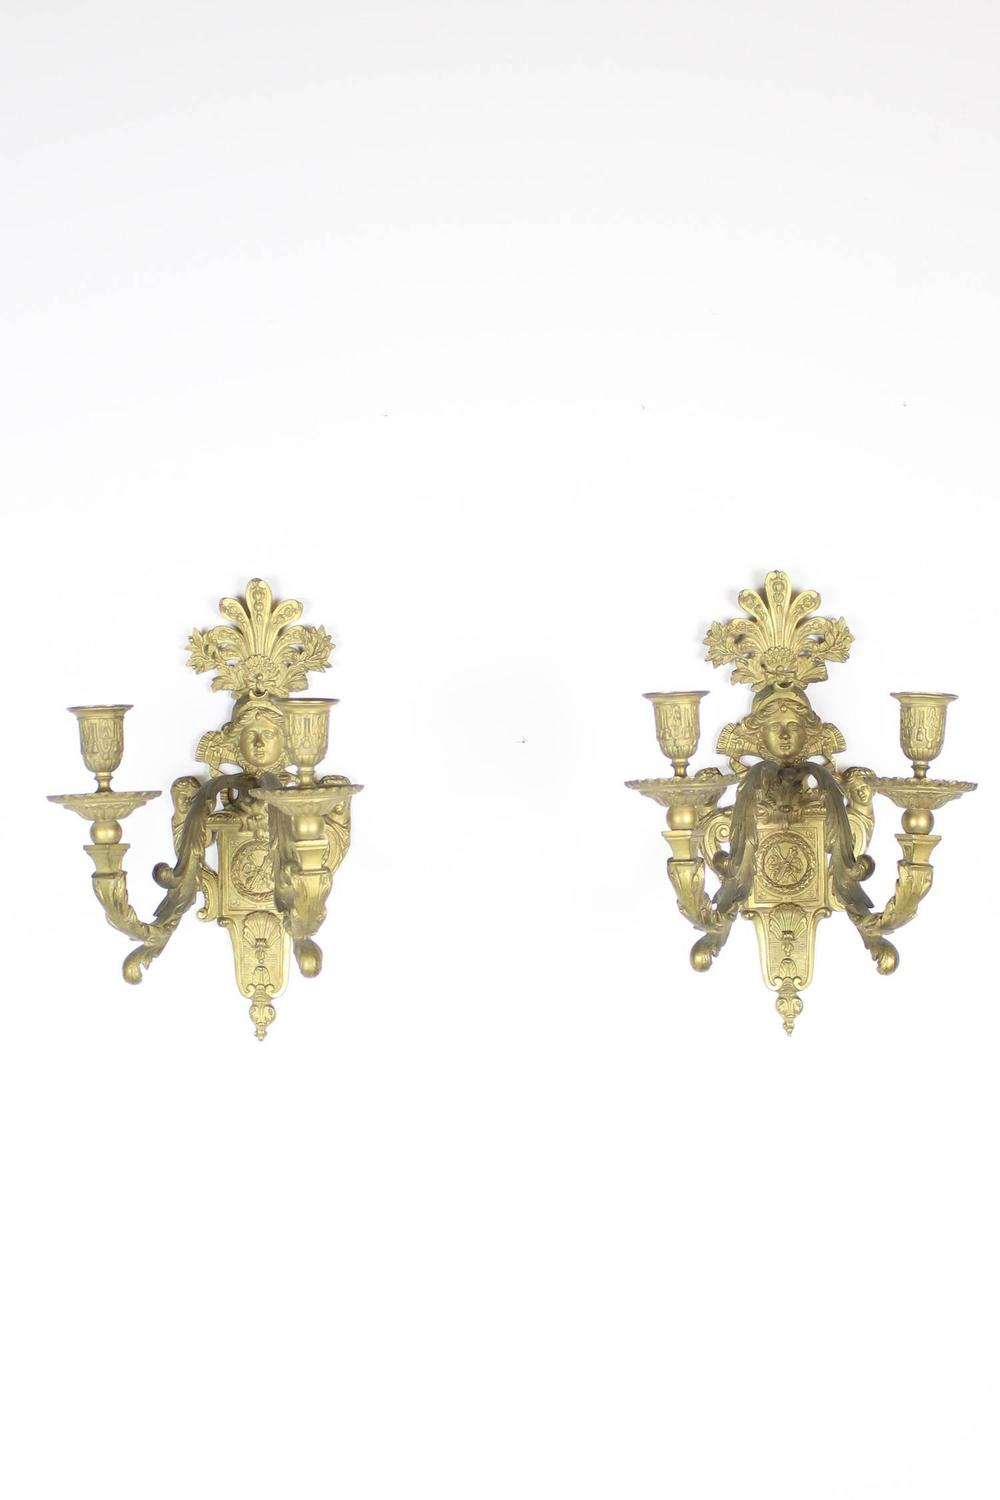 Pair Of Double Arm Beaux Arts Figural Sconces For Sale At